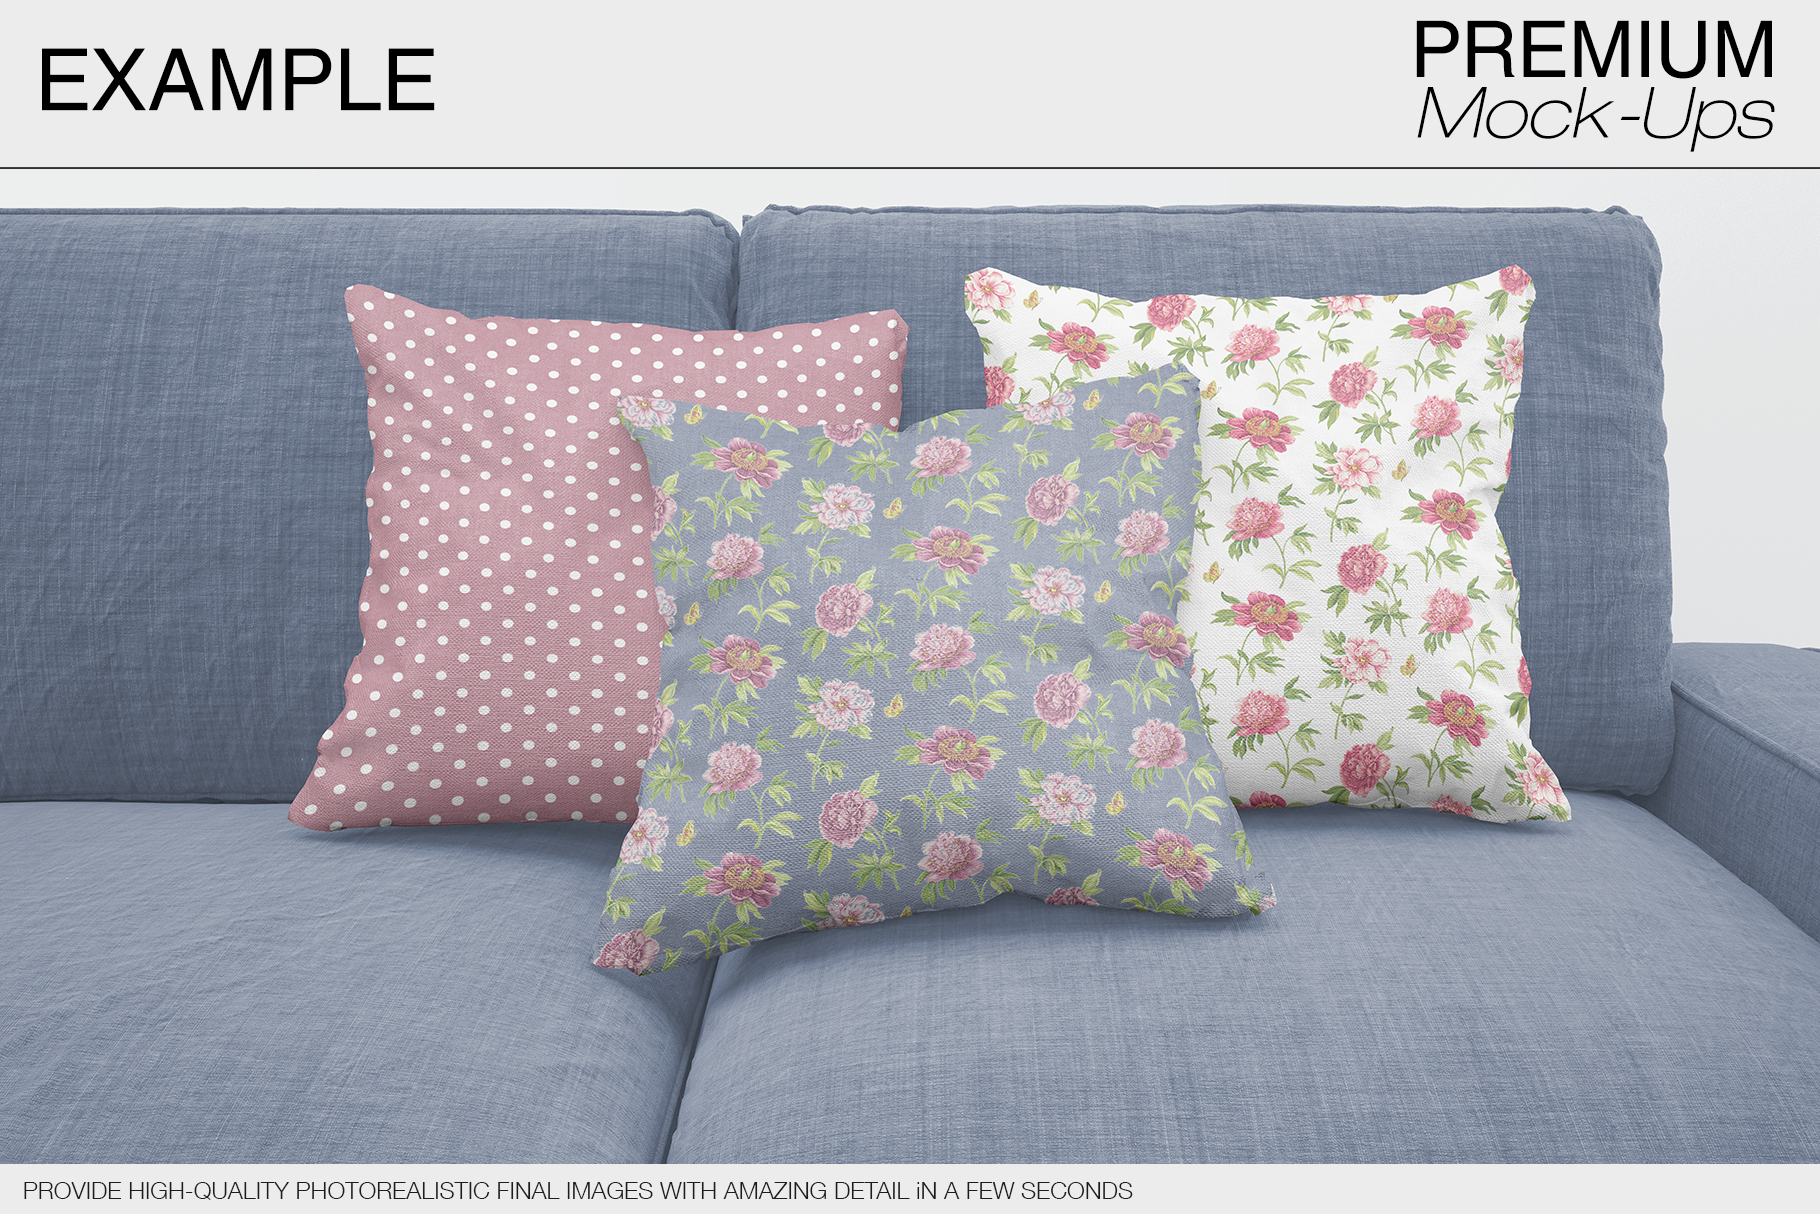 Pillow Mockups example image 7